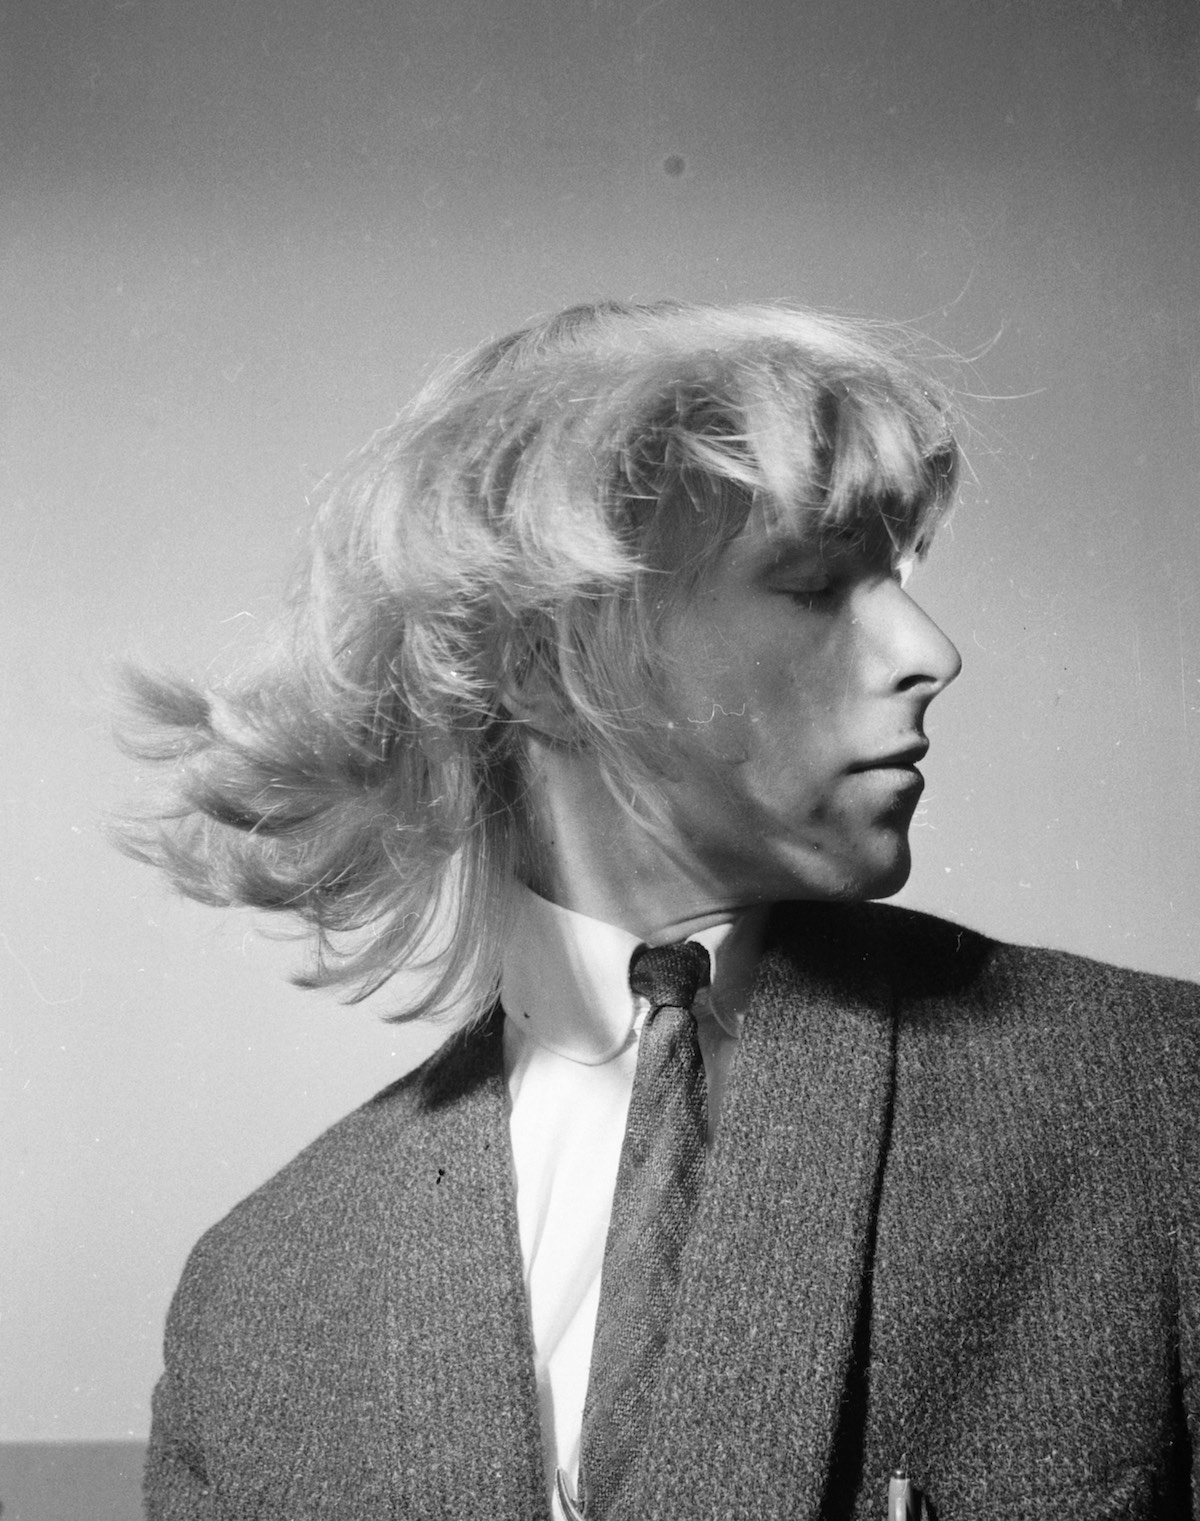 In 1964 David Bowie Formed A Society To Defend Men With Long Hair